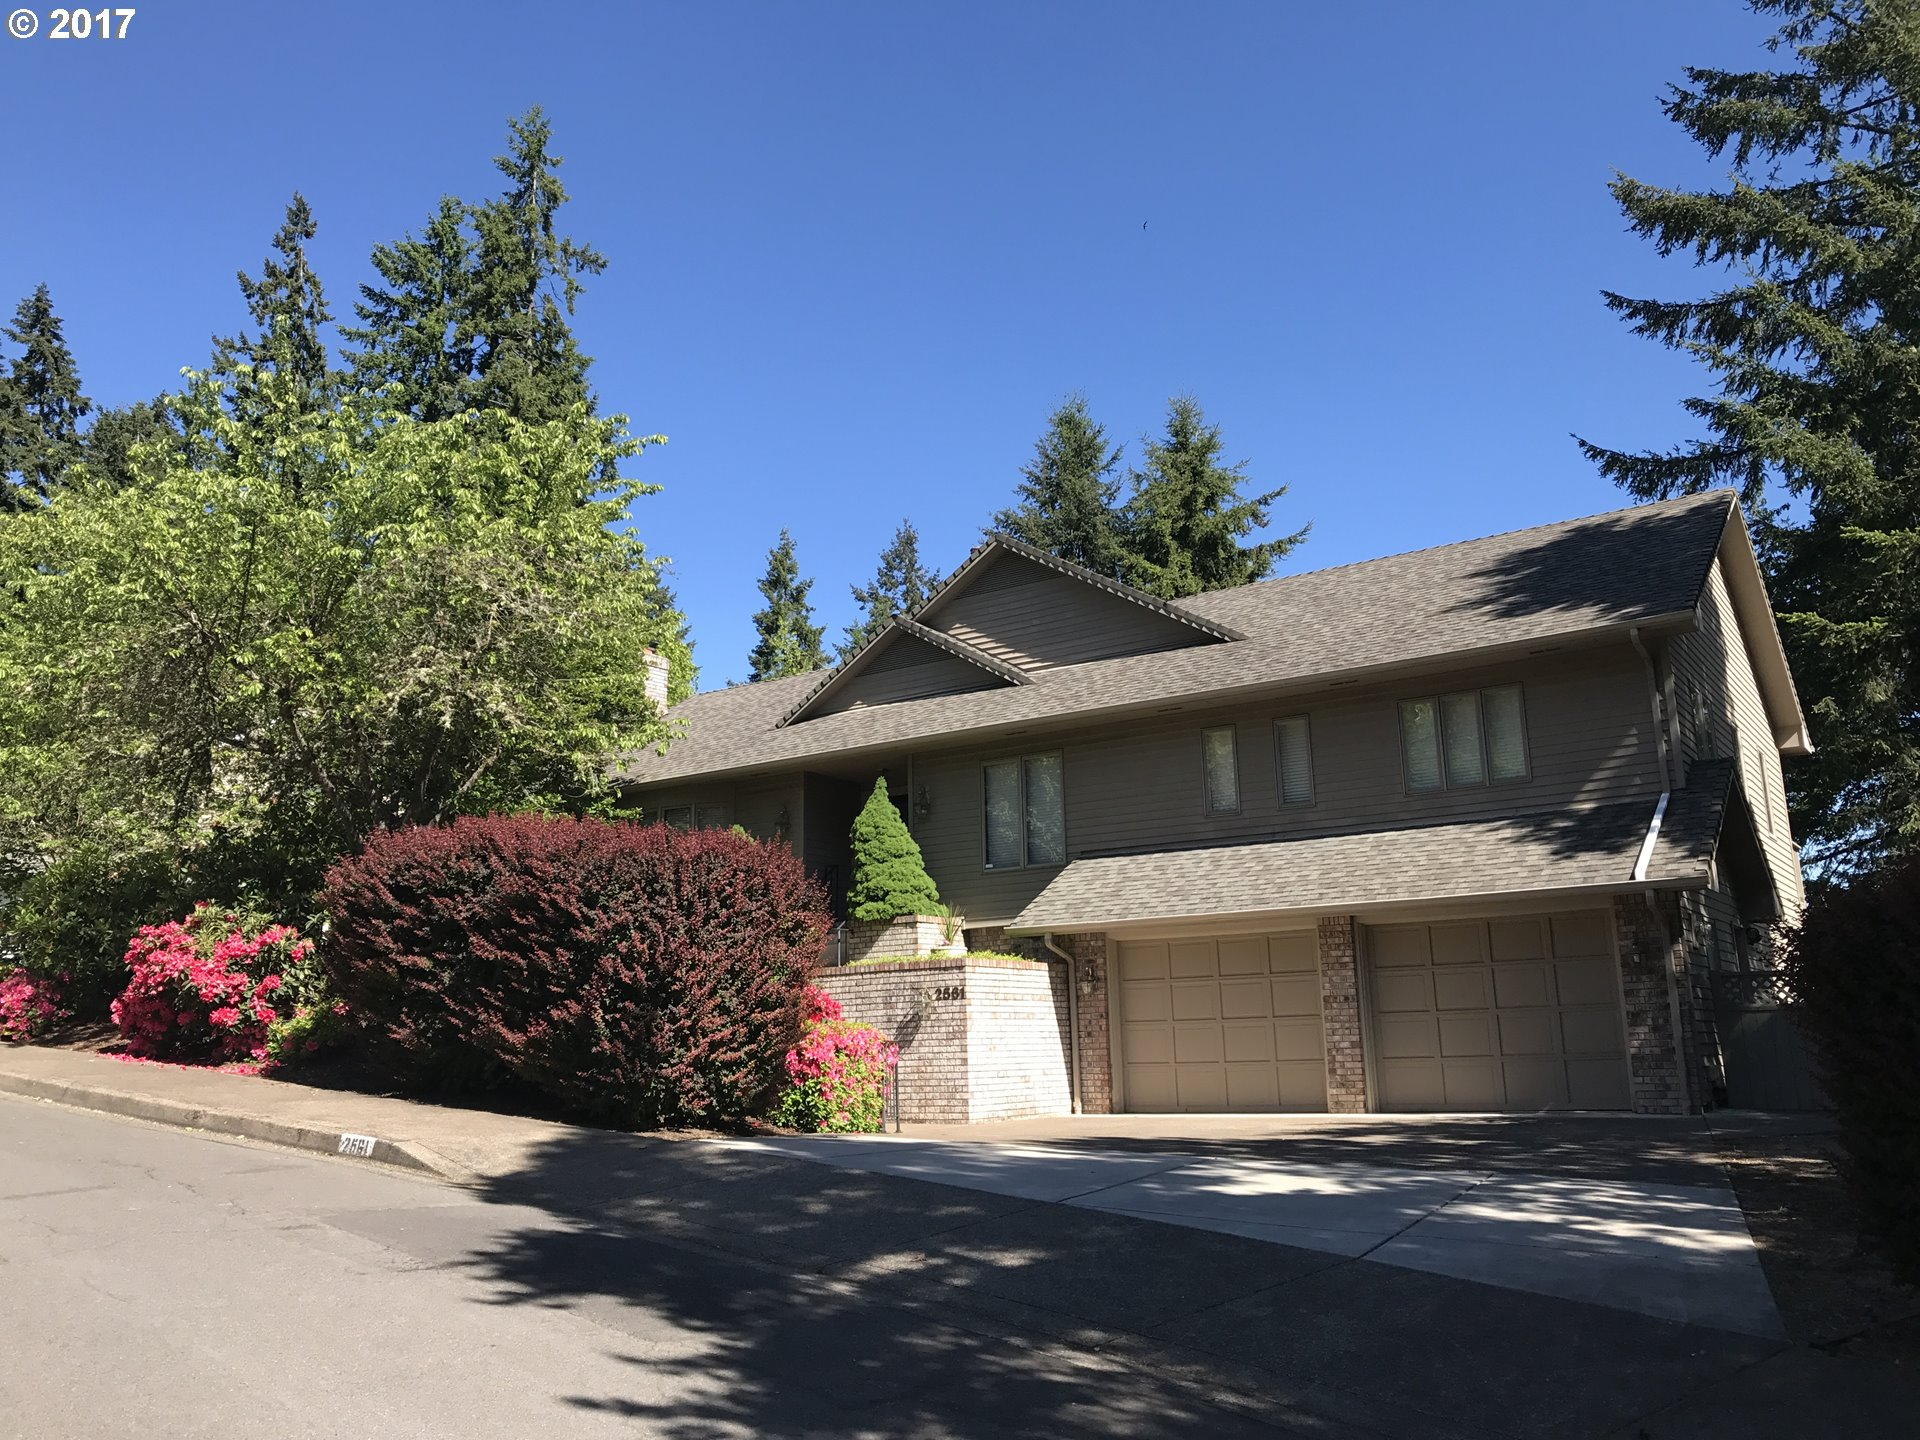 2561 W 27TH AVE, Eugene, OR 97405